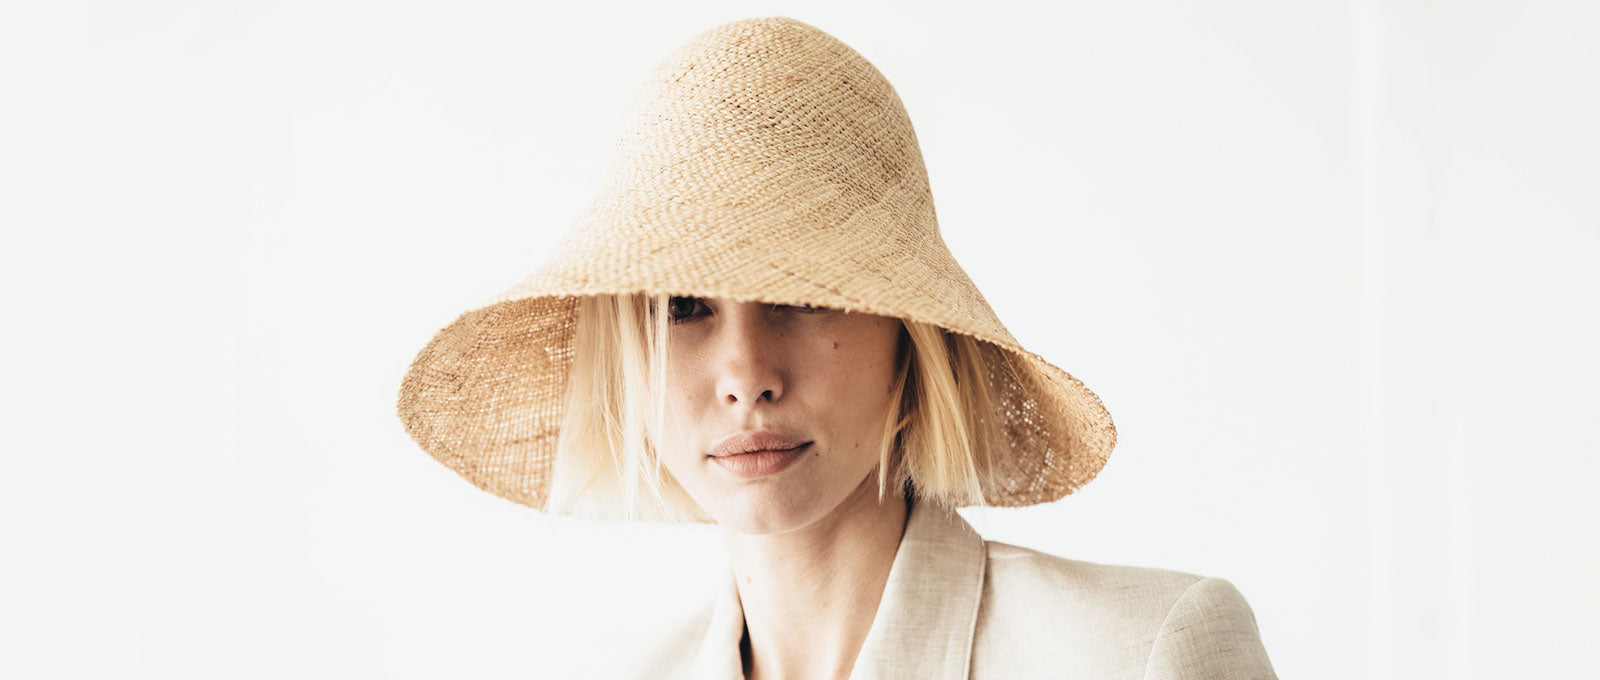 Janessa Leone Summer Women's Hats Summer Spring Hats made for the beach and traveling | wide brimmed straw hats ivory natural cream straw natural straw hat bucket natural straw black and white bucket hat bucket hat for women | bucket hats with long brim | short brimmed bucket style womens hat | Sun protective hat with thick straw weave | Beach travel hat women's bucket hat  unique luxury chic hat